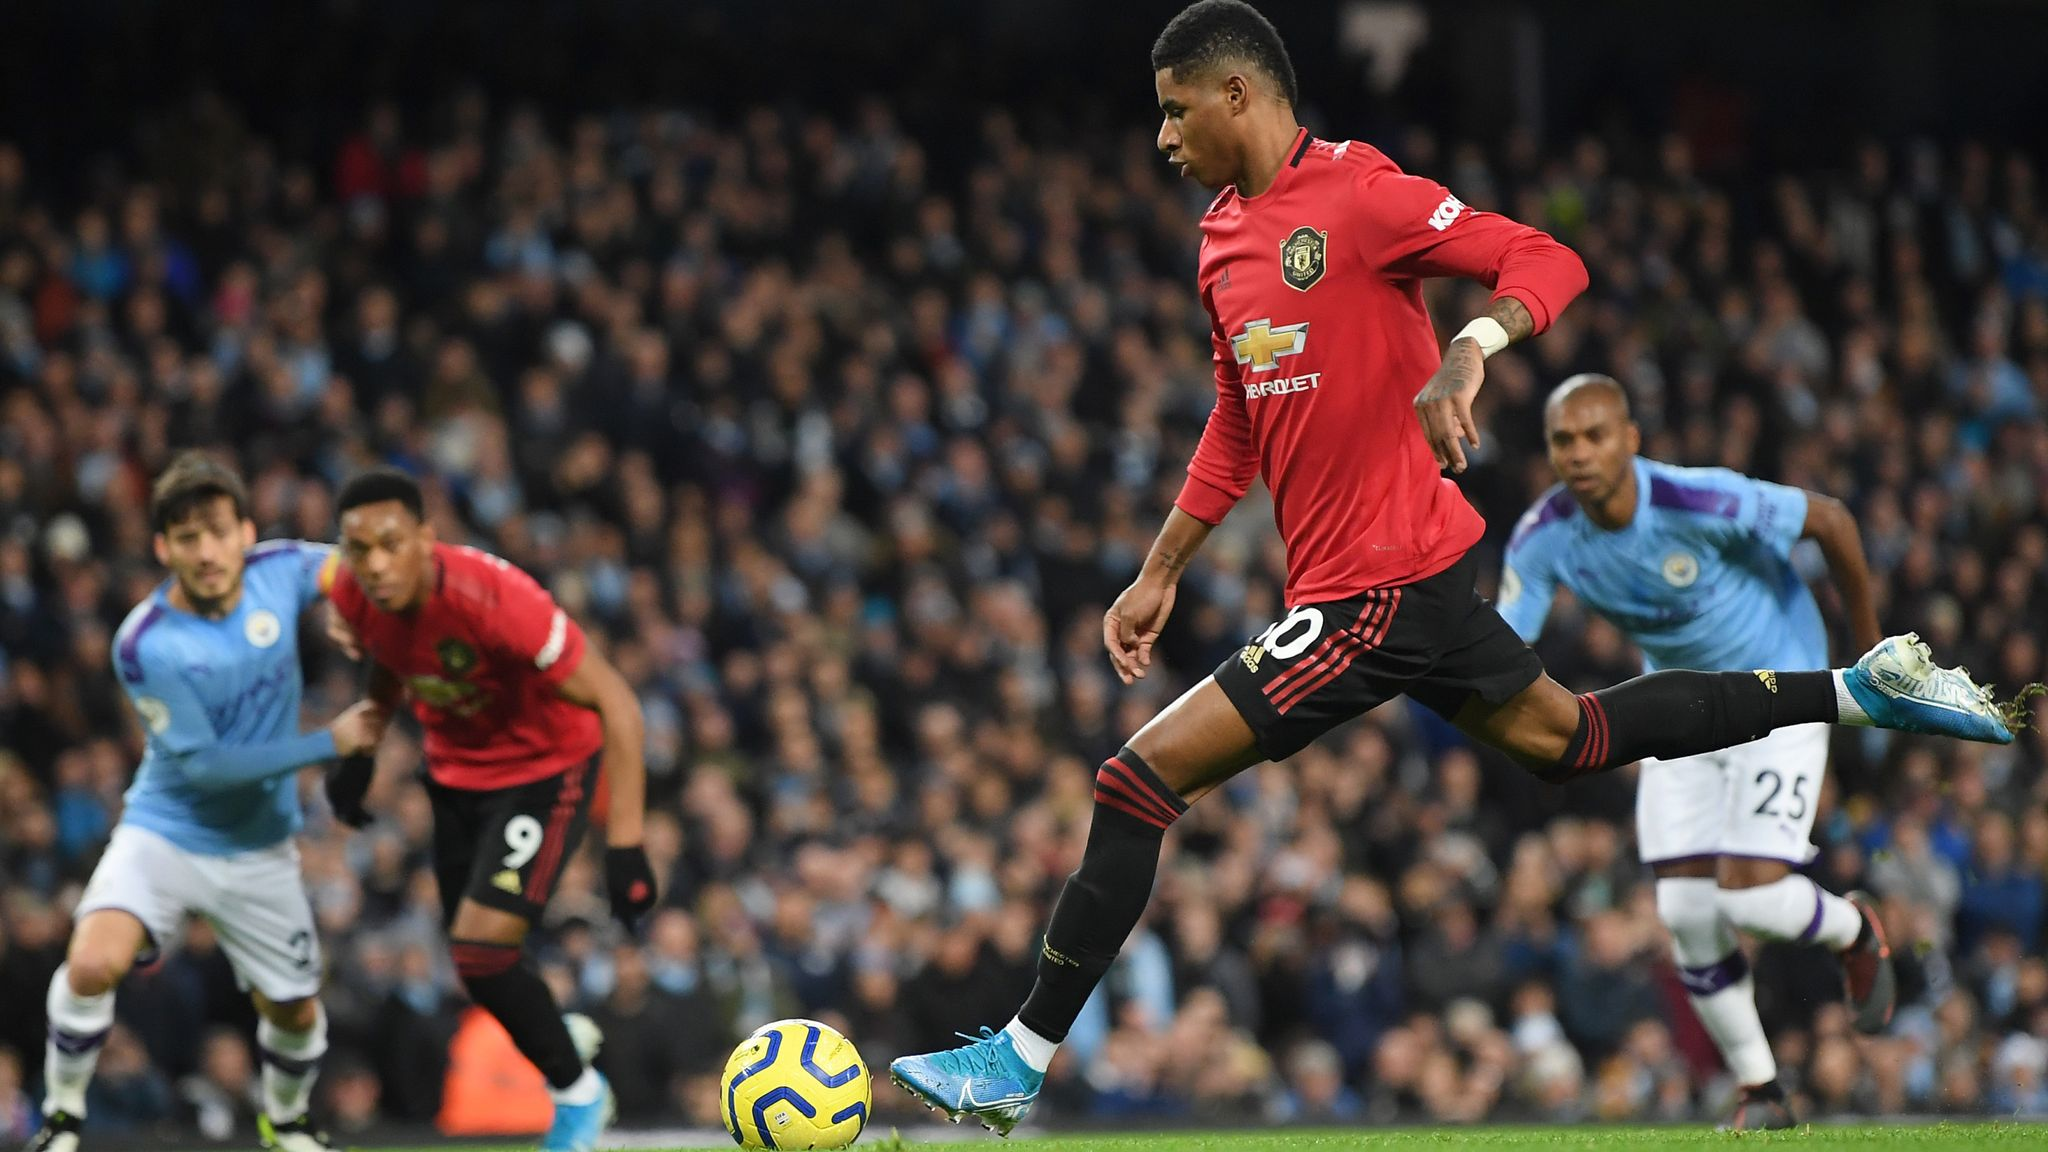 Man Utd were 'out of this world' against Man City, says Jamie Carragher